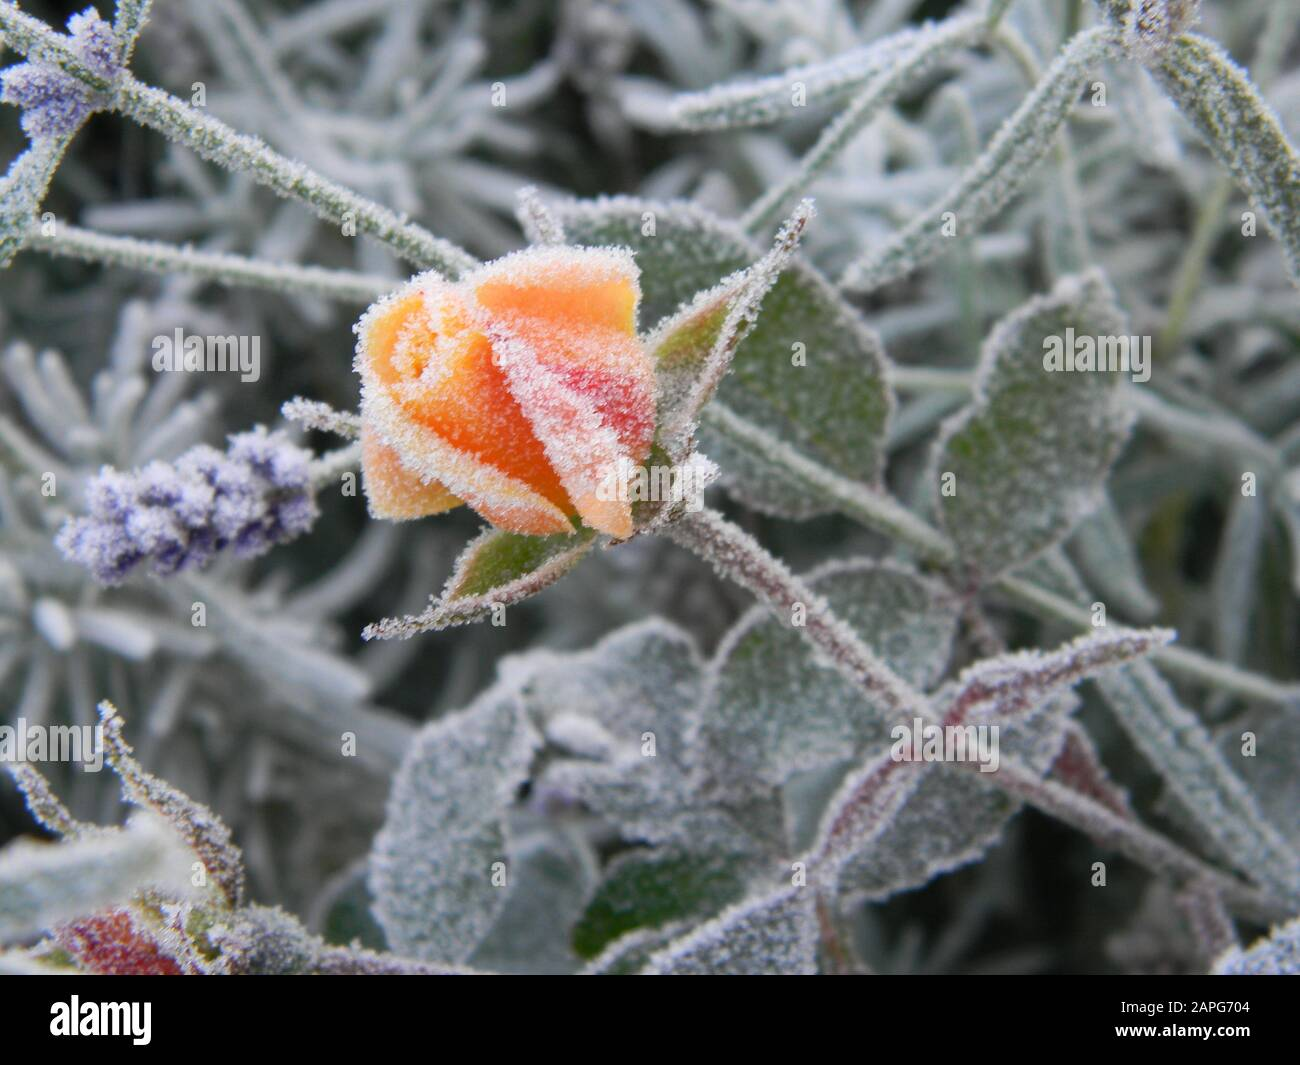 bud of rosa drift rose peach apricot ground cover rose covered in frost lavender in the background stock photo alamy https www alamy com bud of rosa drift rose peachapricot ground cover rose covered in frost lavender in the background image340876148 html